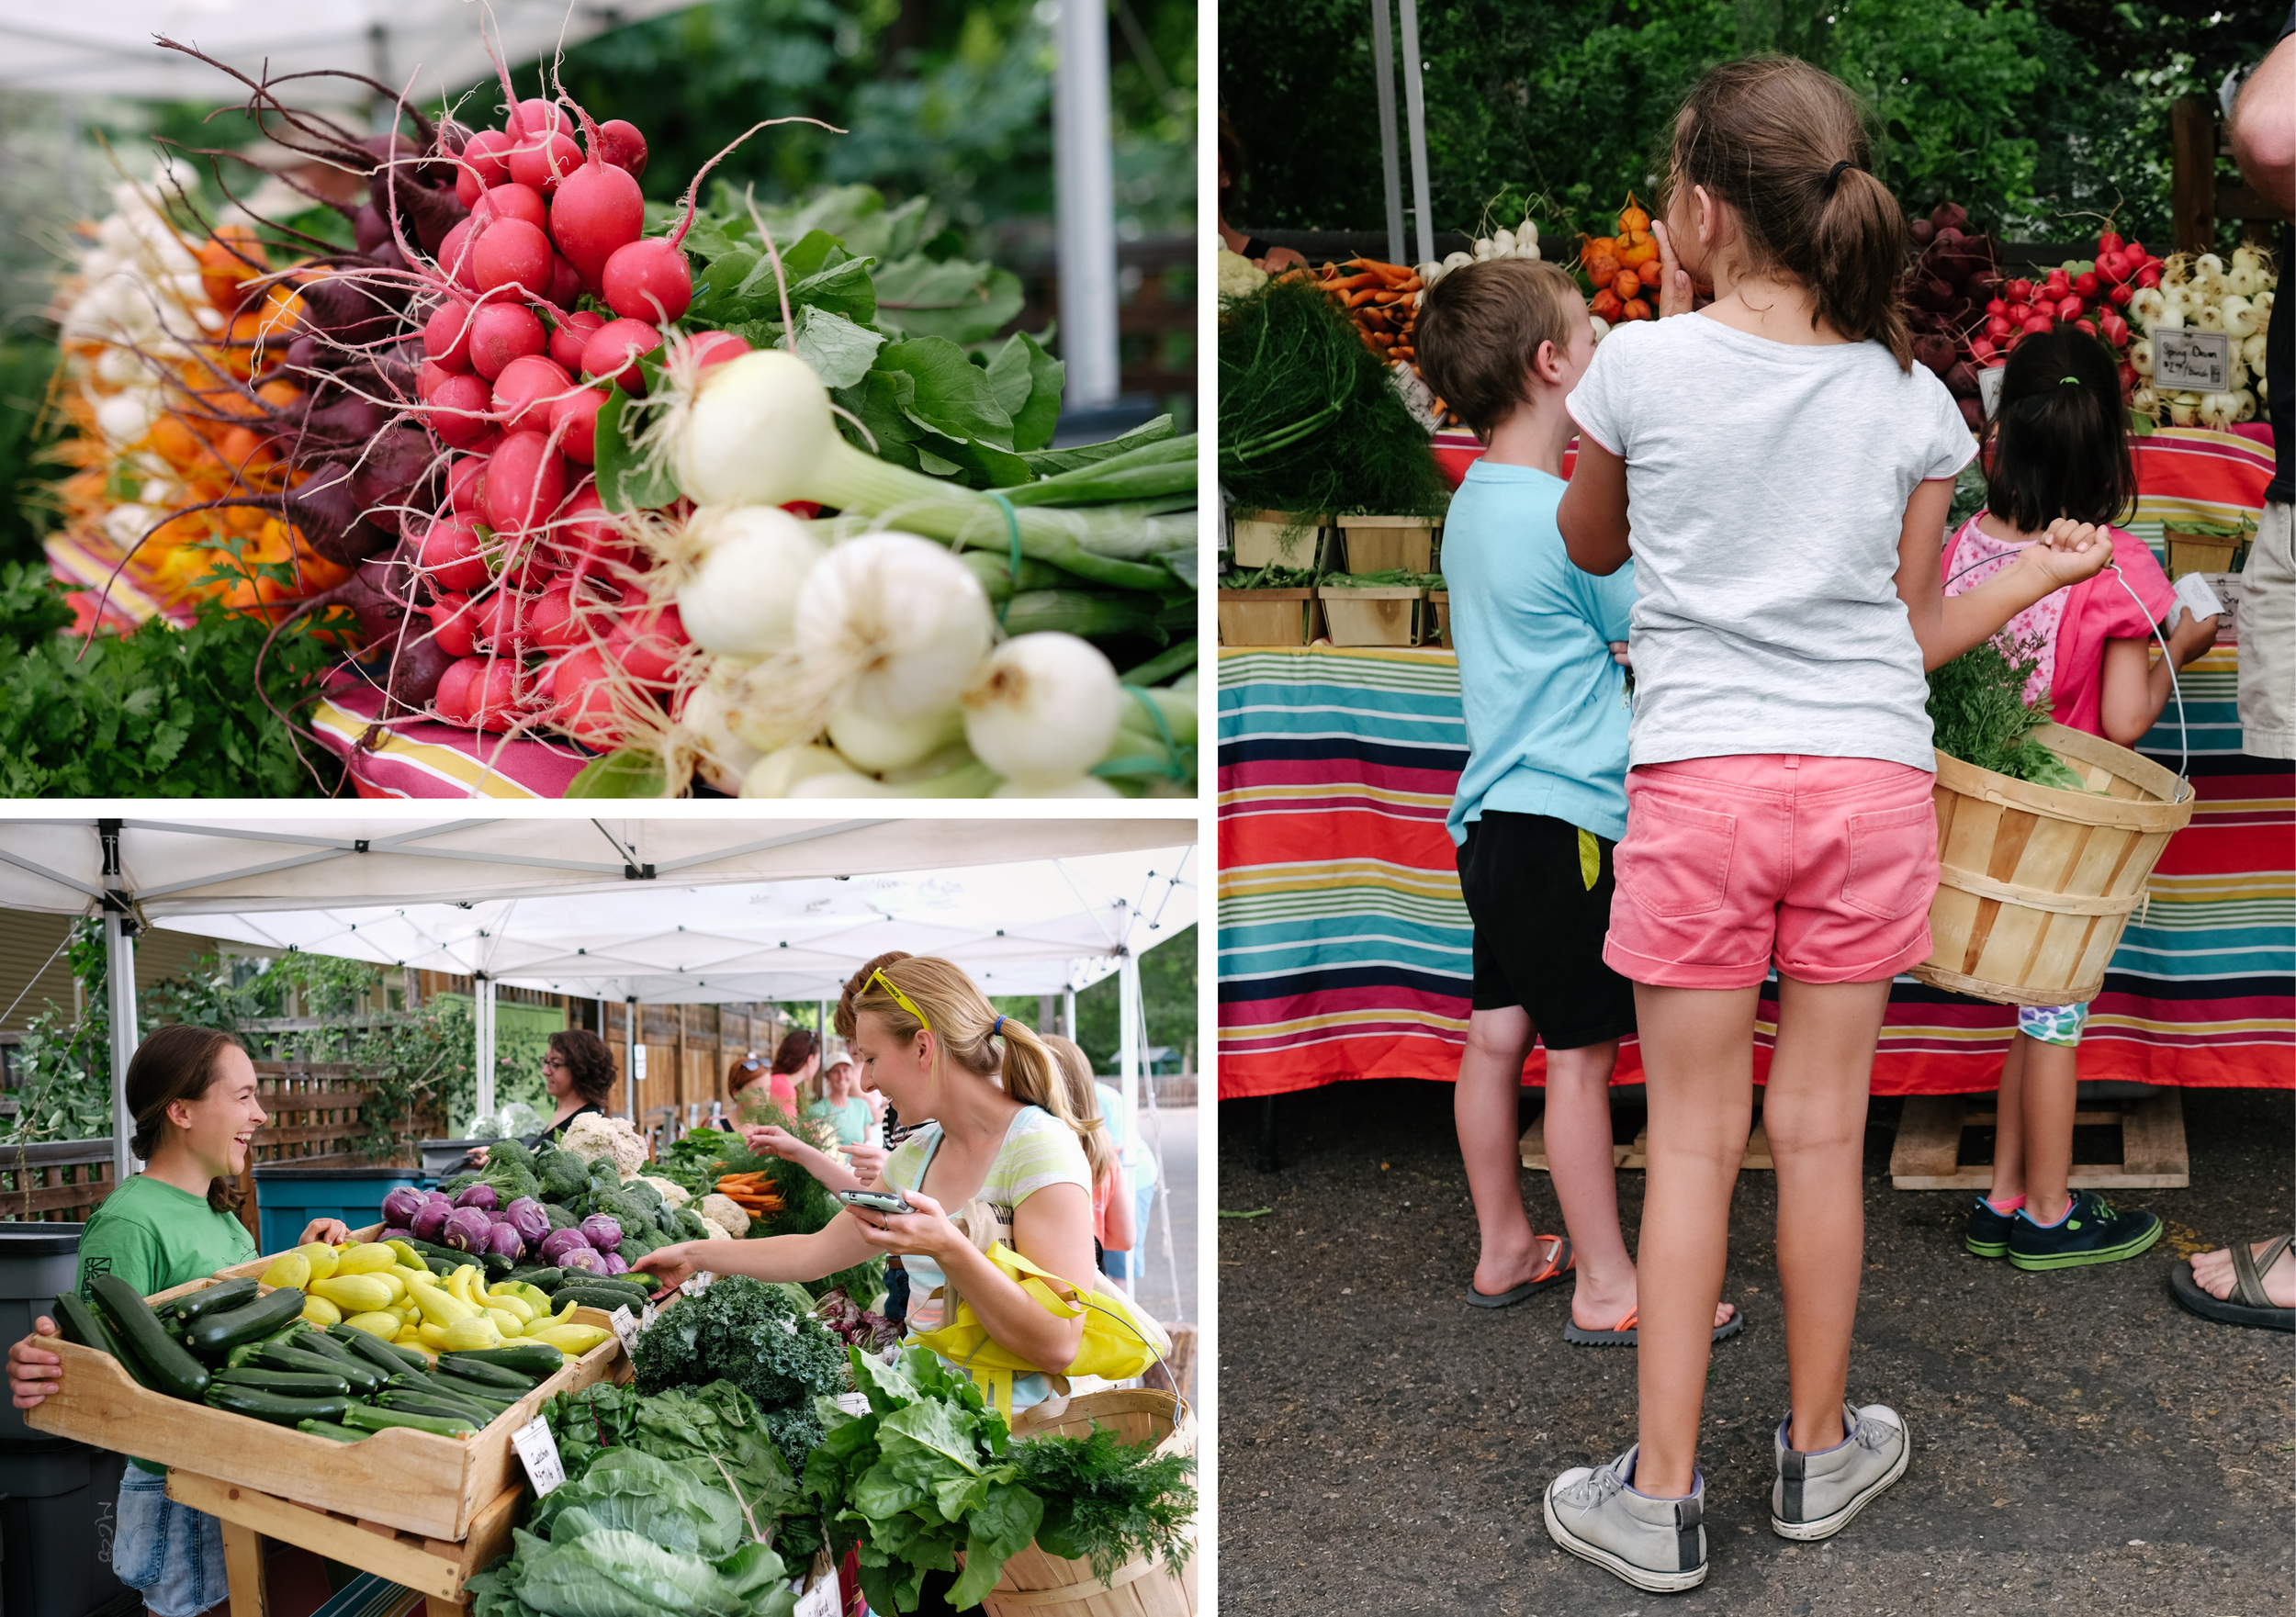 A Wednesday evening farmer's market is equally popular with CSA members and the public.